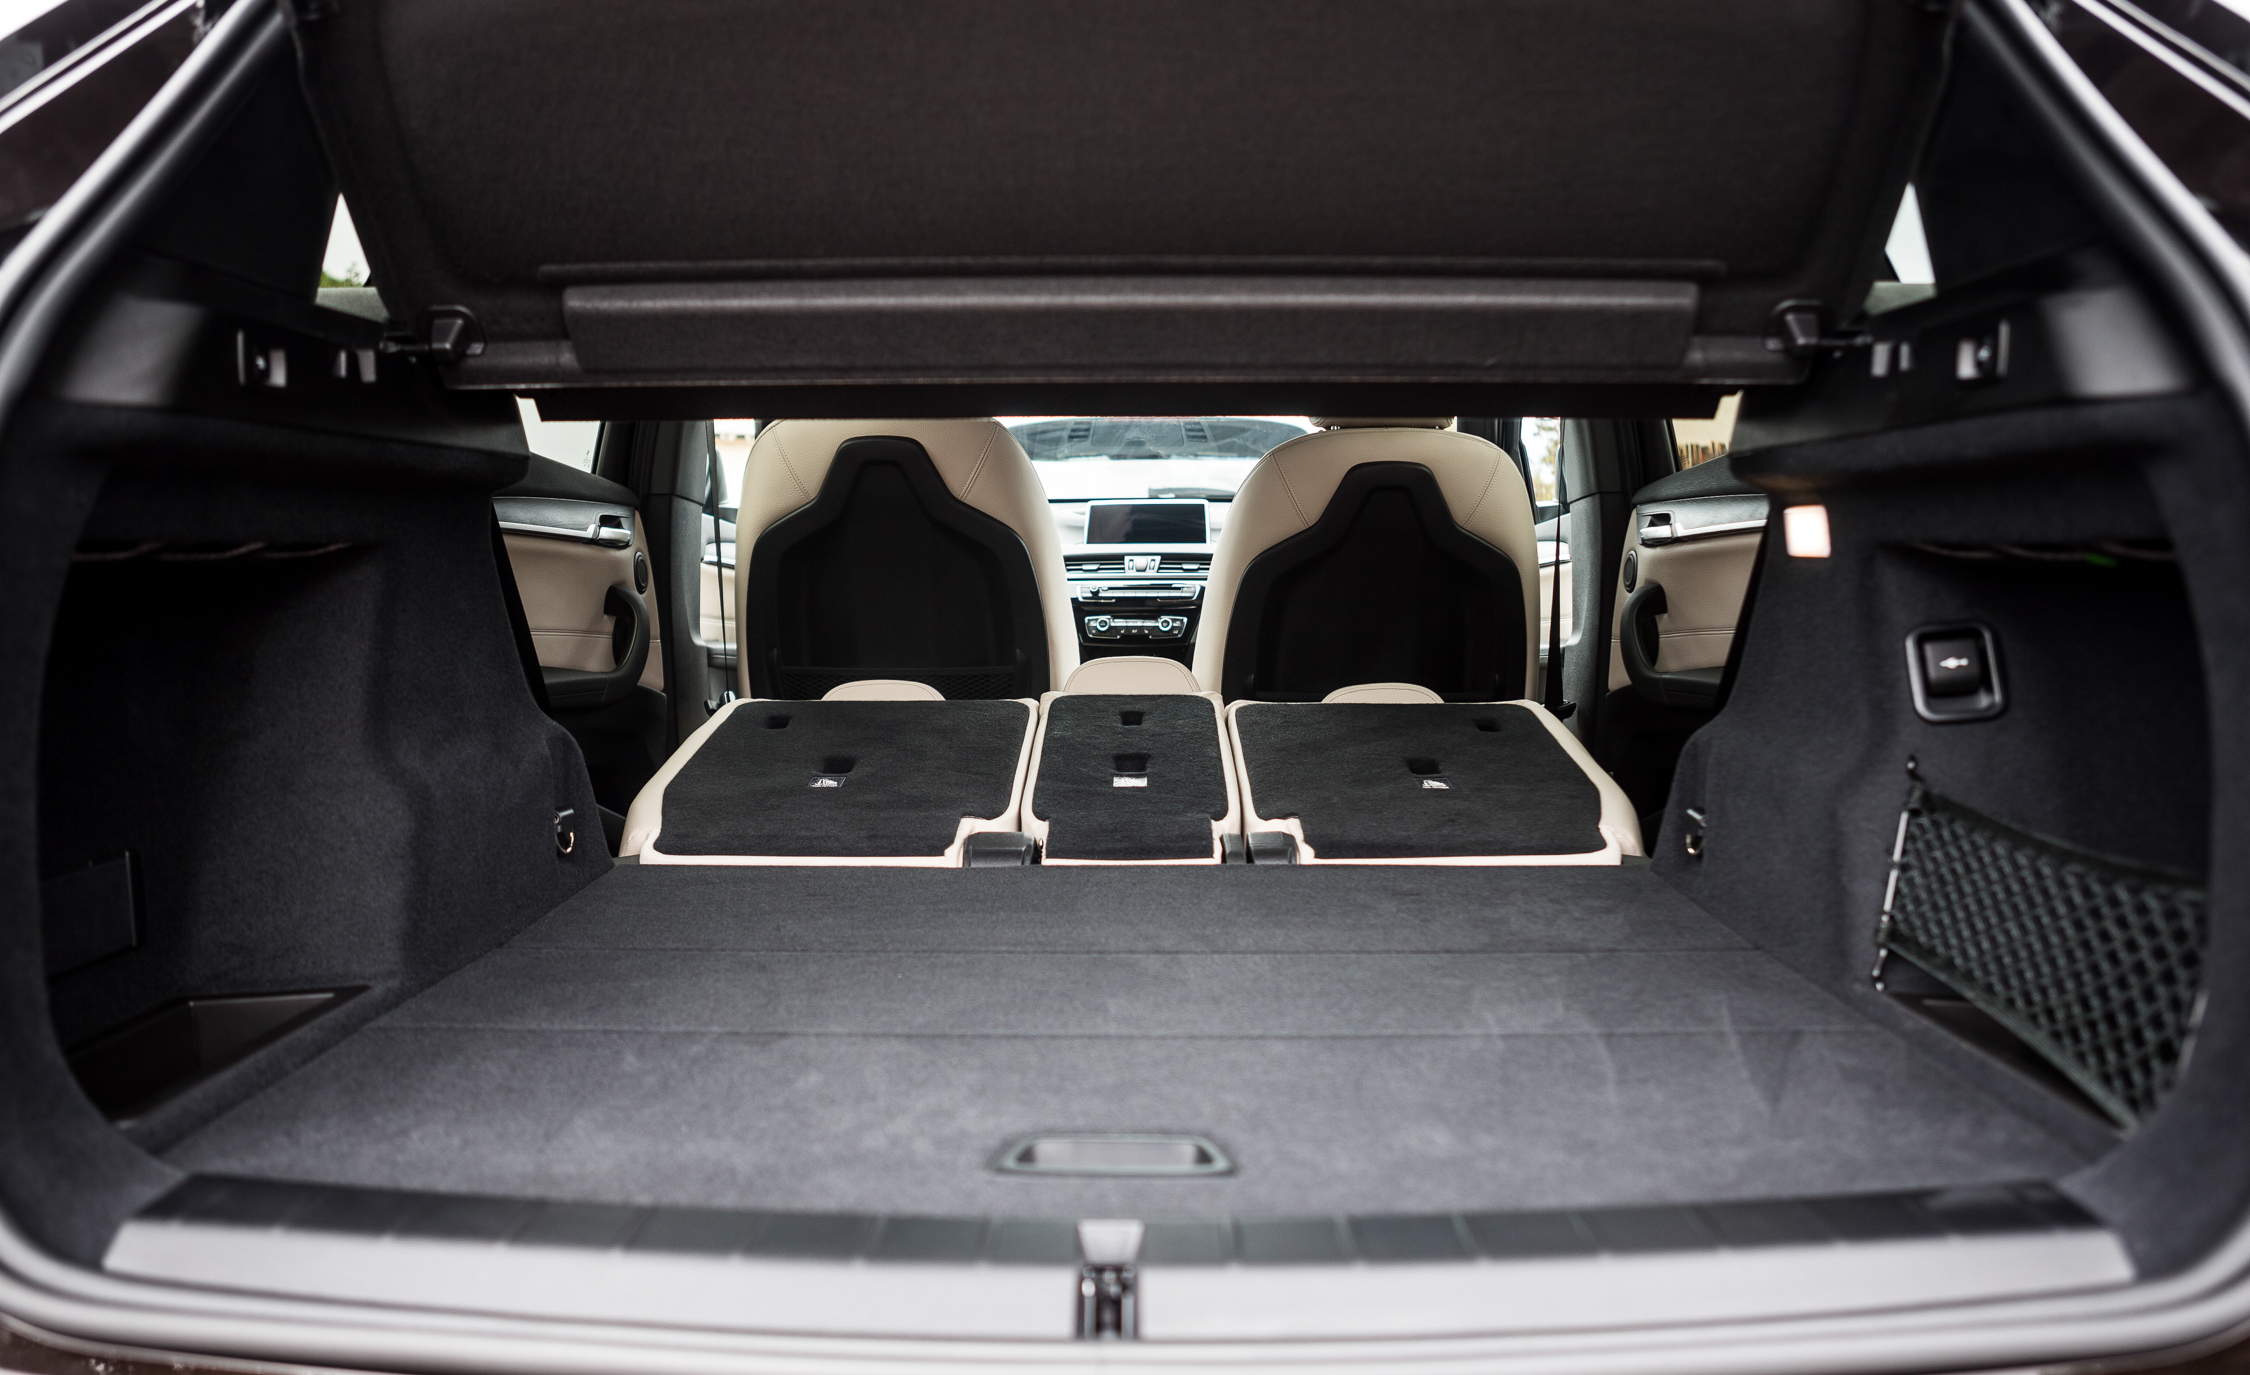 2016 BMW X1 Interior View Cargo Space Seats Folded Down (View 16 of 36)